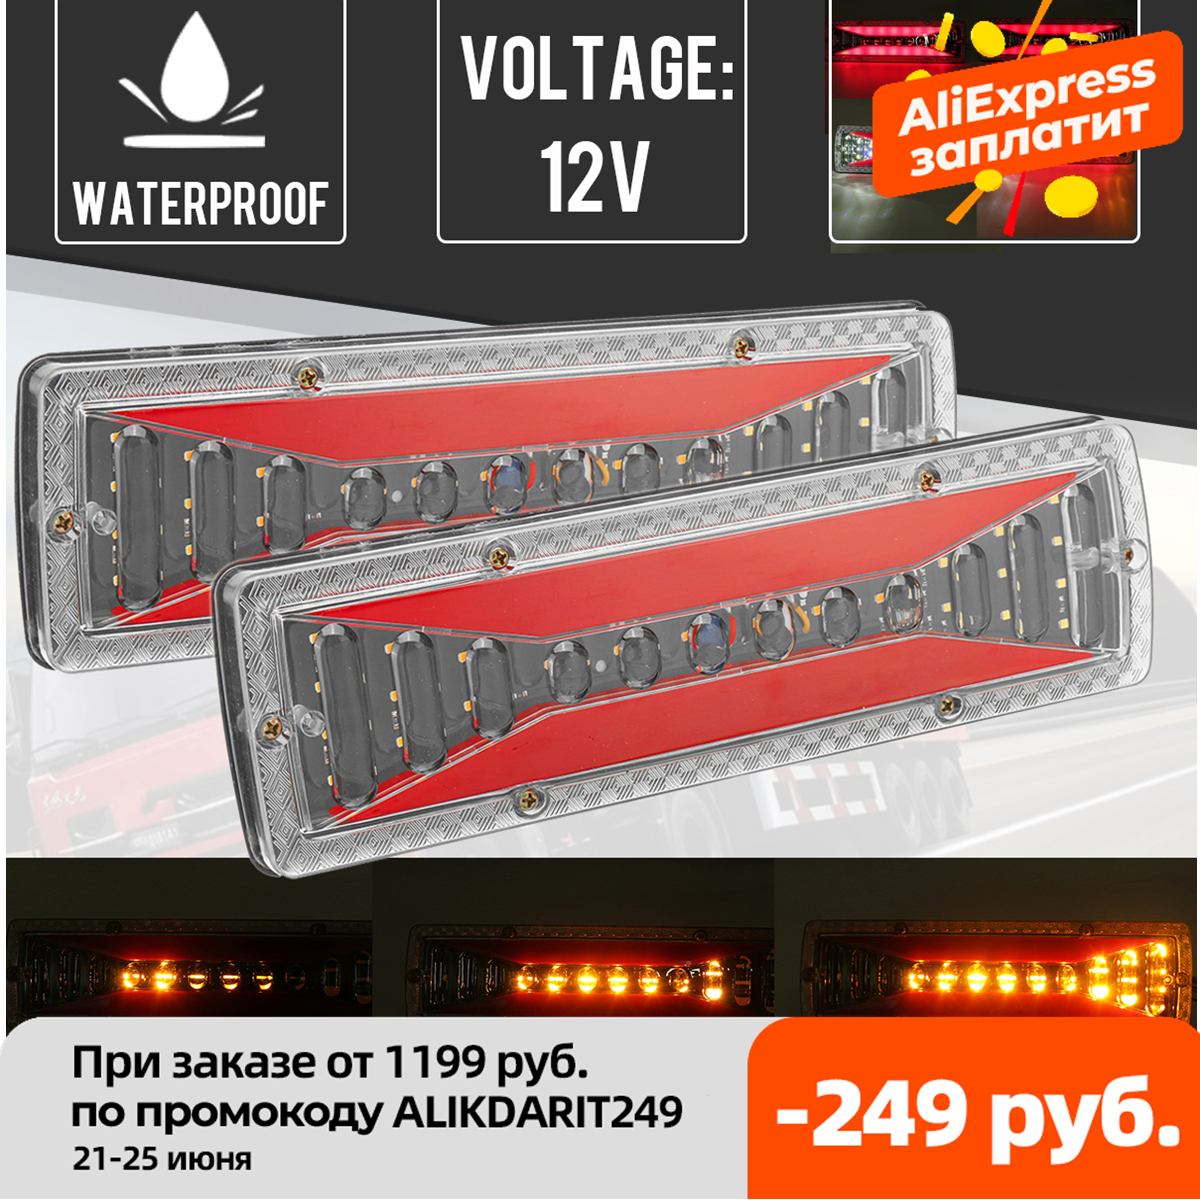 2PCS 12V Dynamic LED Car Truck Tail Light Turn Signal Rear Brake ight Reverse Signal Lamp For Trailer Lorry Bus Campers